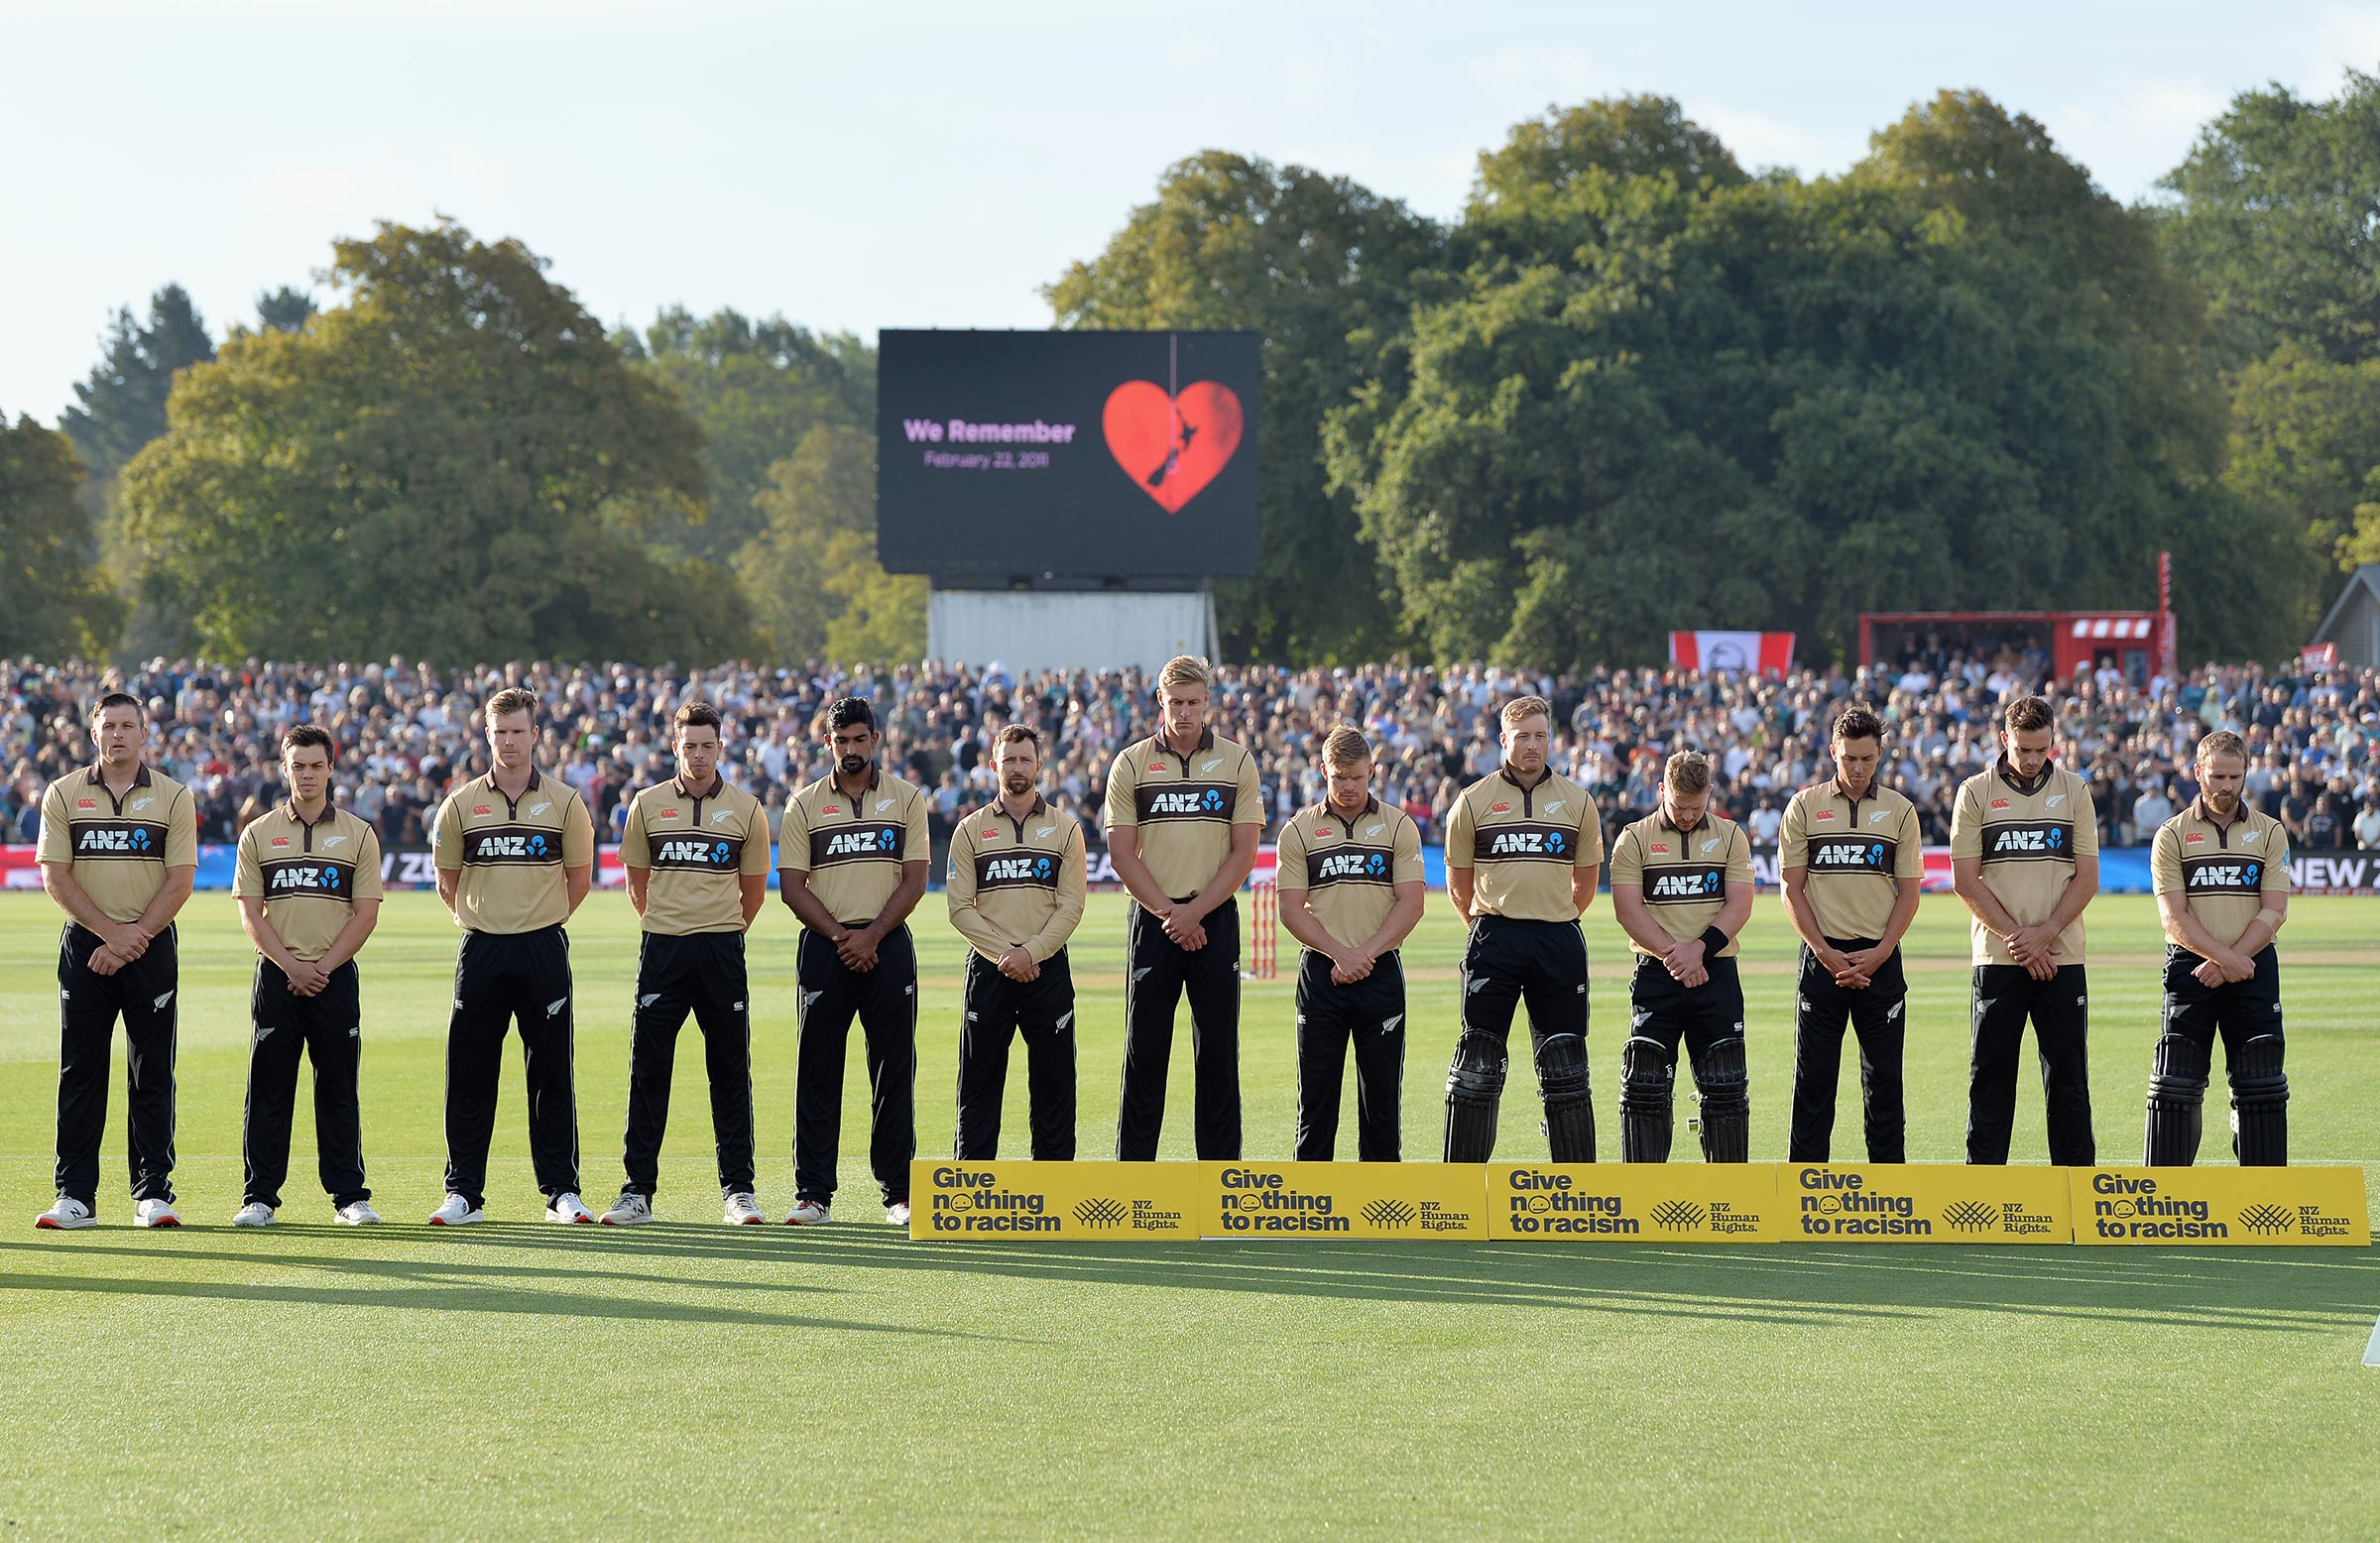 Players observe a moment of silence before play // Getty